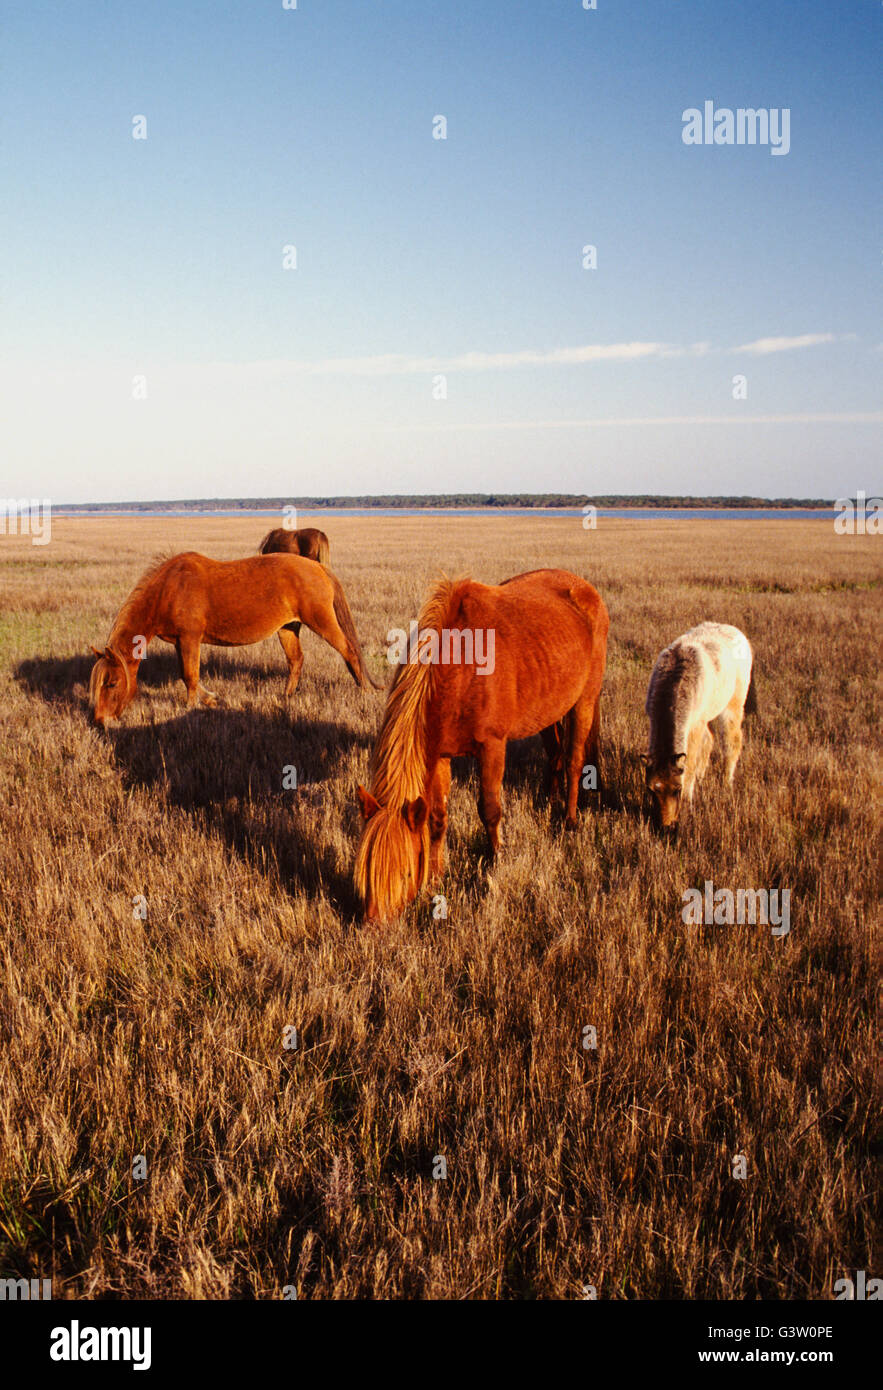 Wild horses (known as 'Ponies') in Chincoteague National Wildlife Refuge, Assateague Island, Virginia, USA - Stock Image